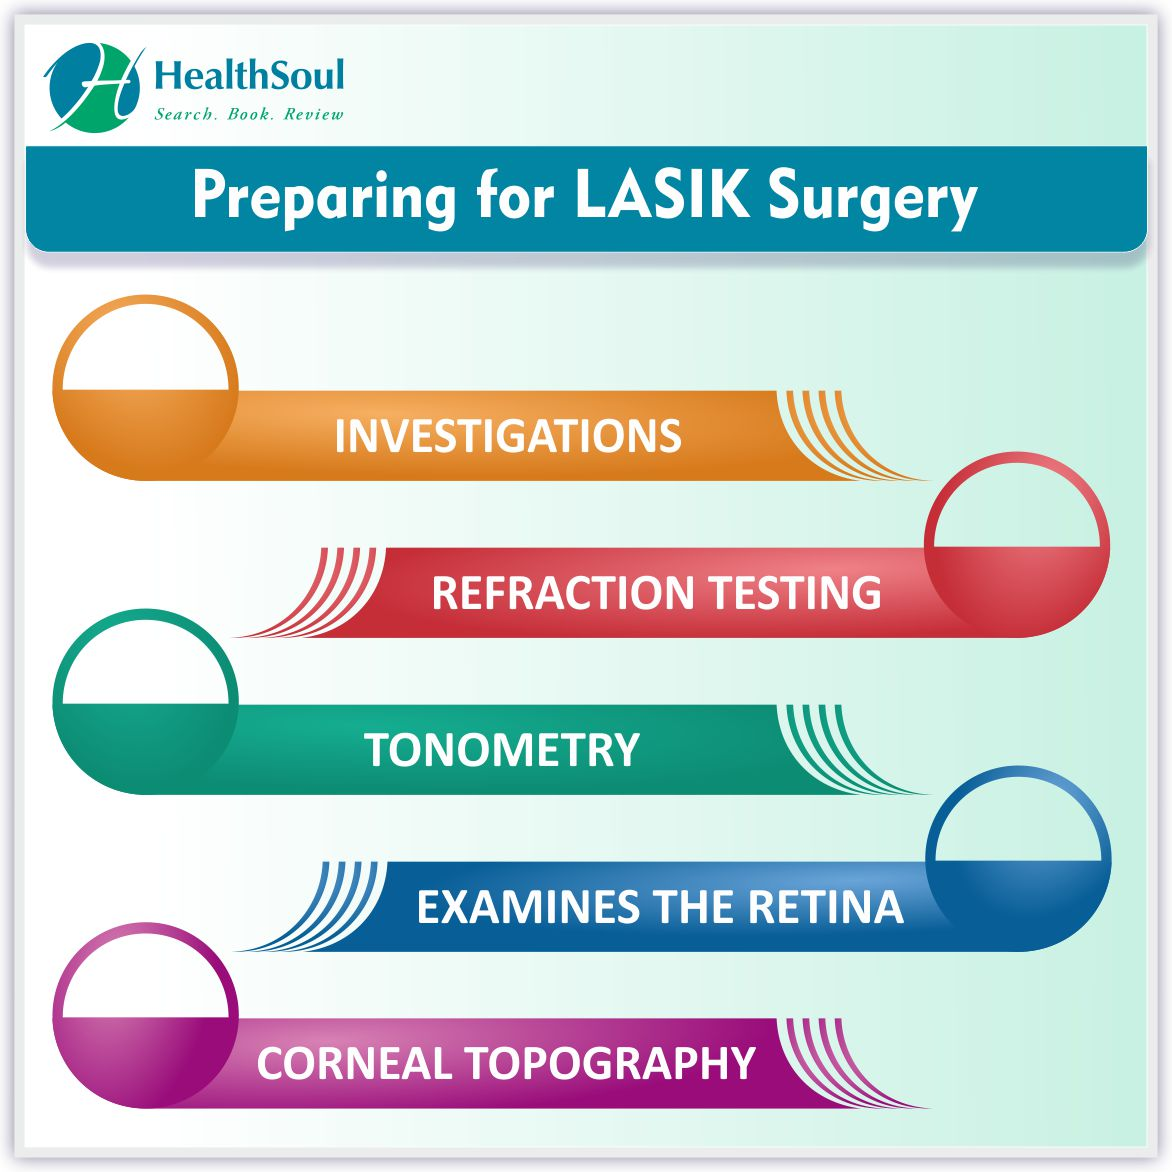 Preparing for LASIK Surgery | HealthSoul